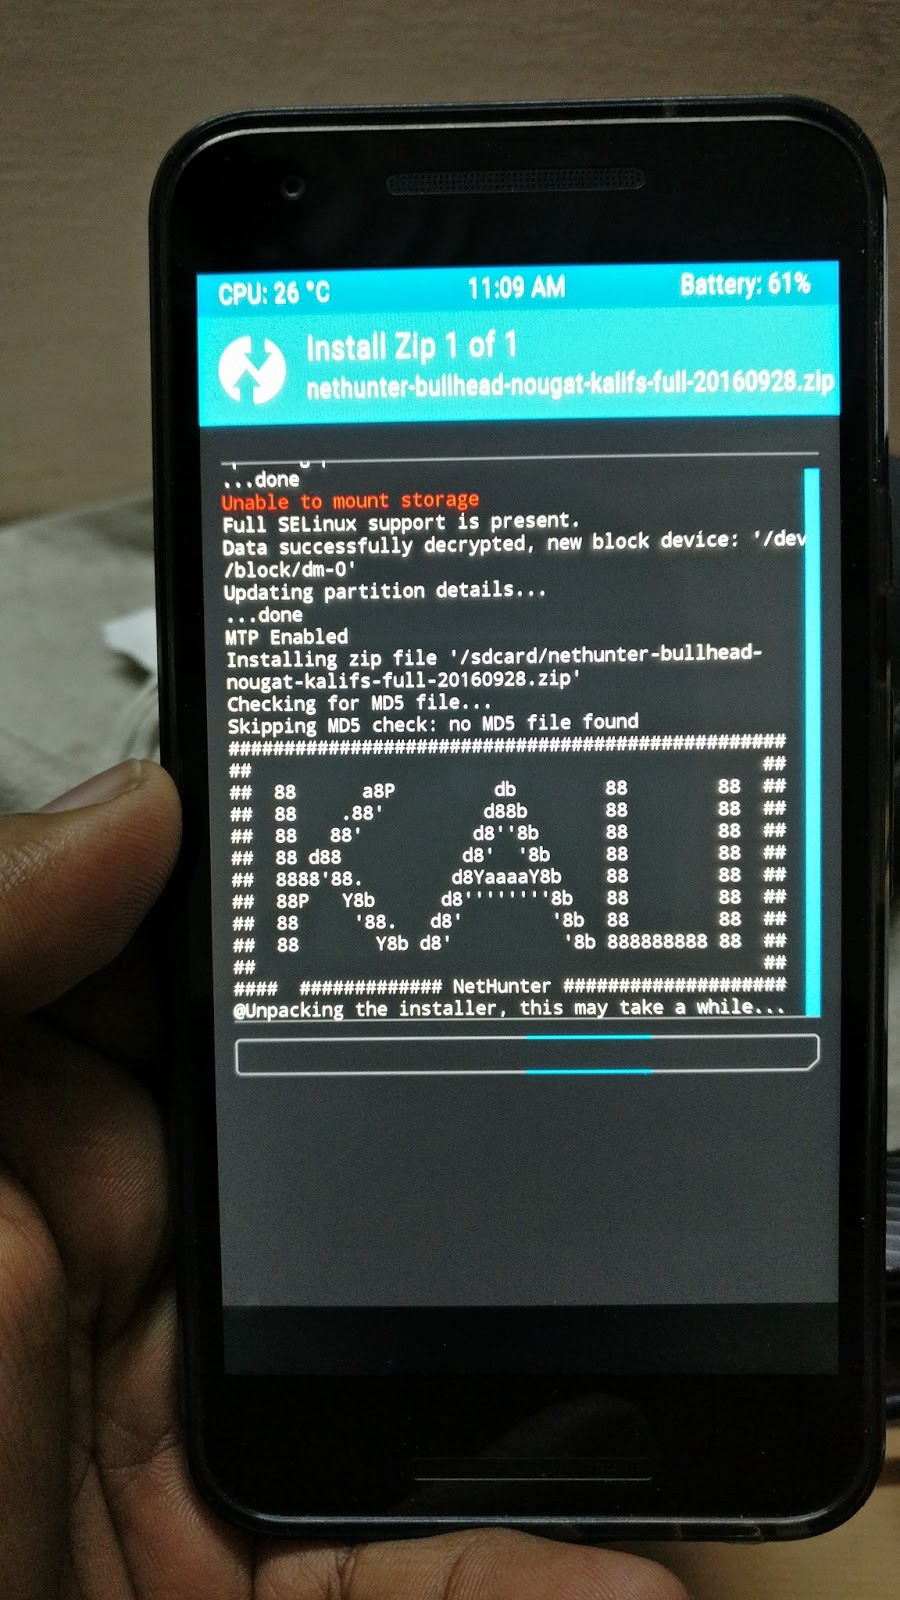 Download kali linux zip file for android | Peatix